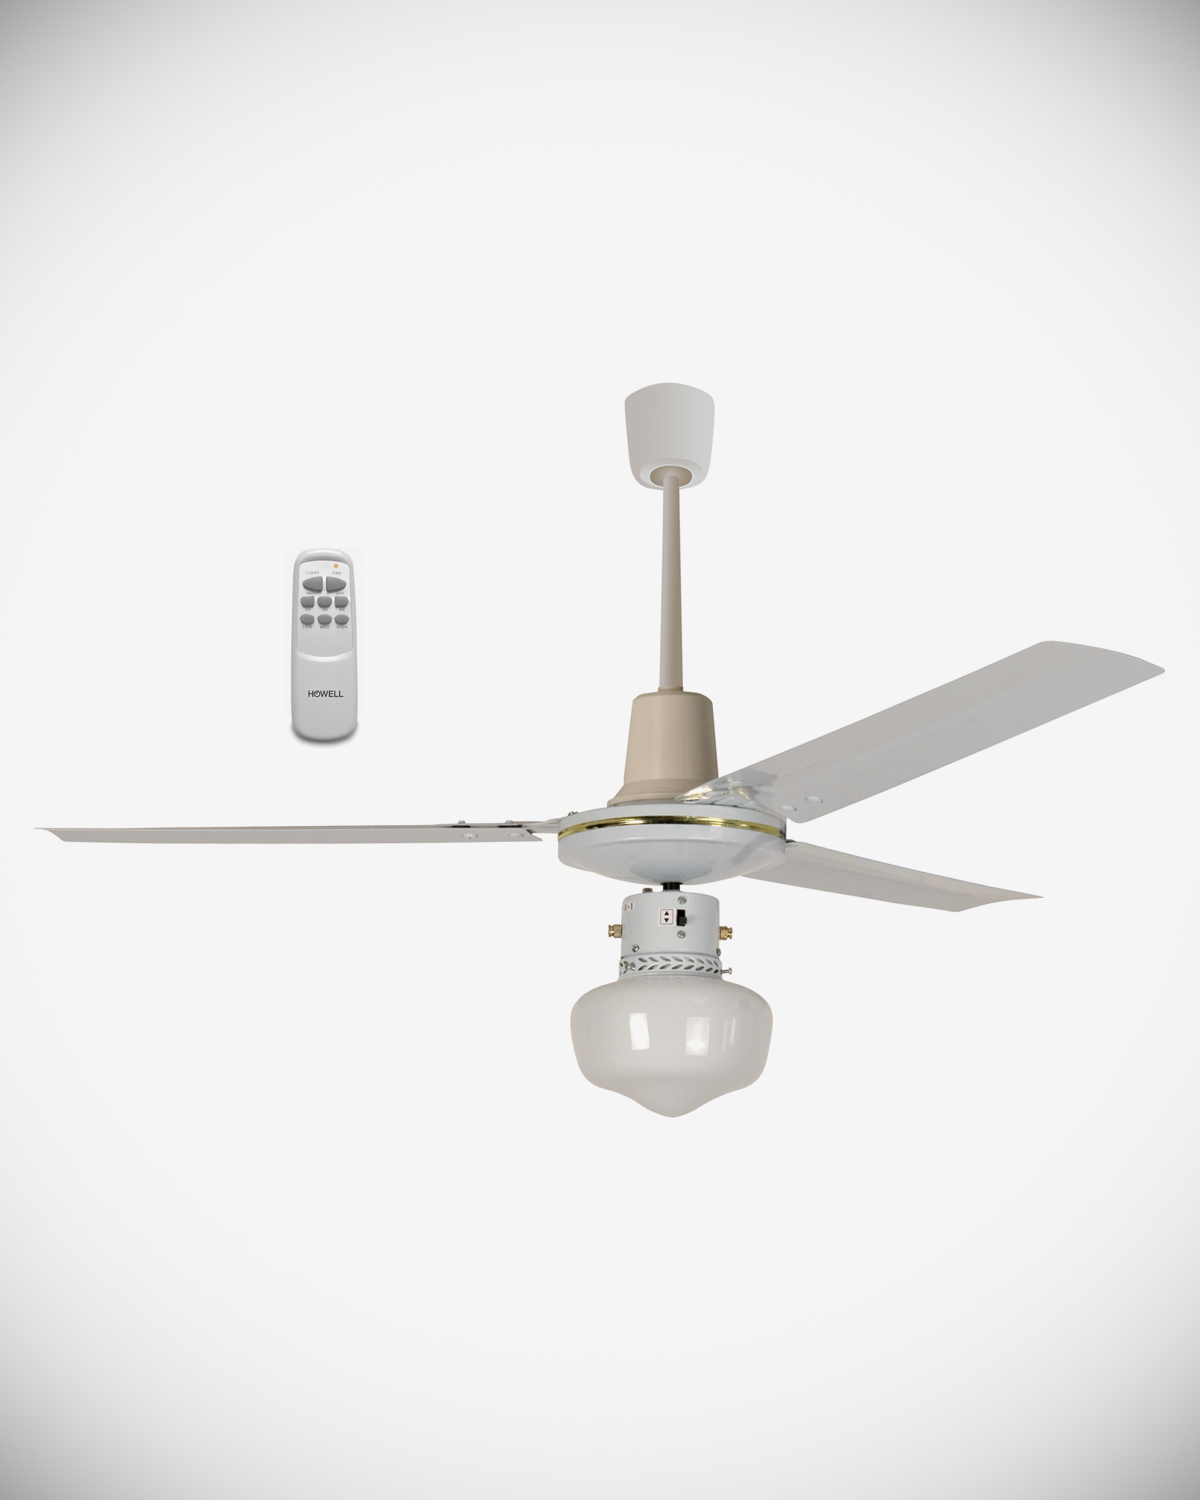 Ceiling fan with remote control HO.VSR1212